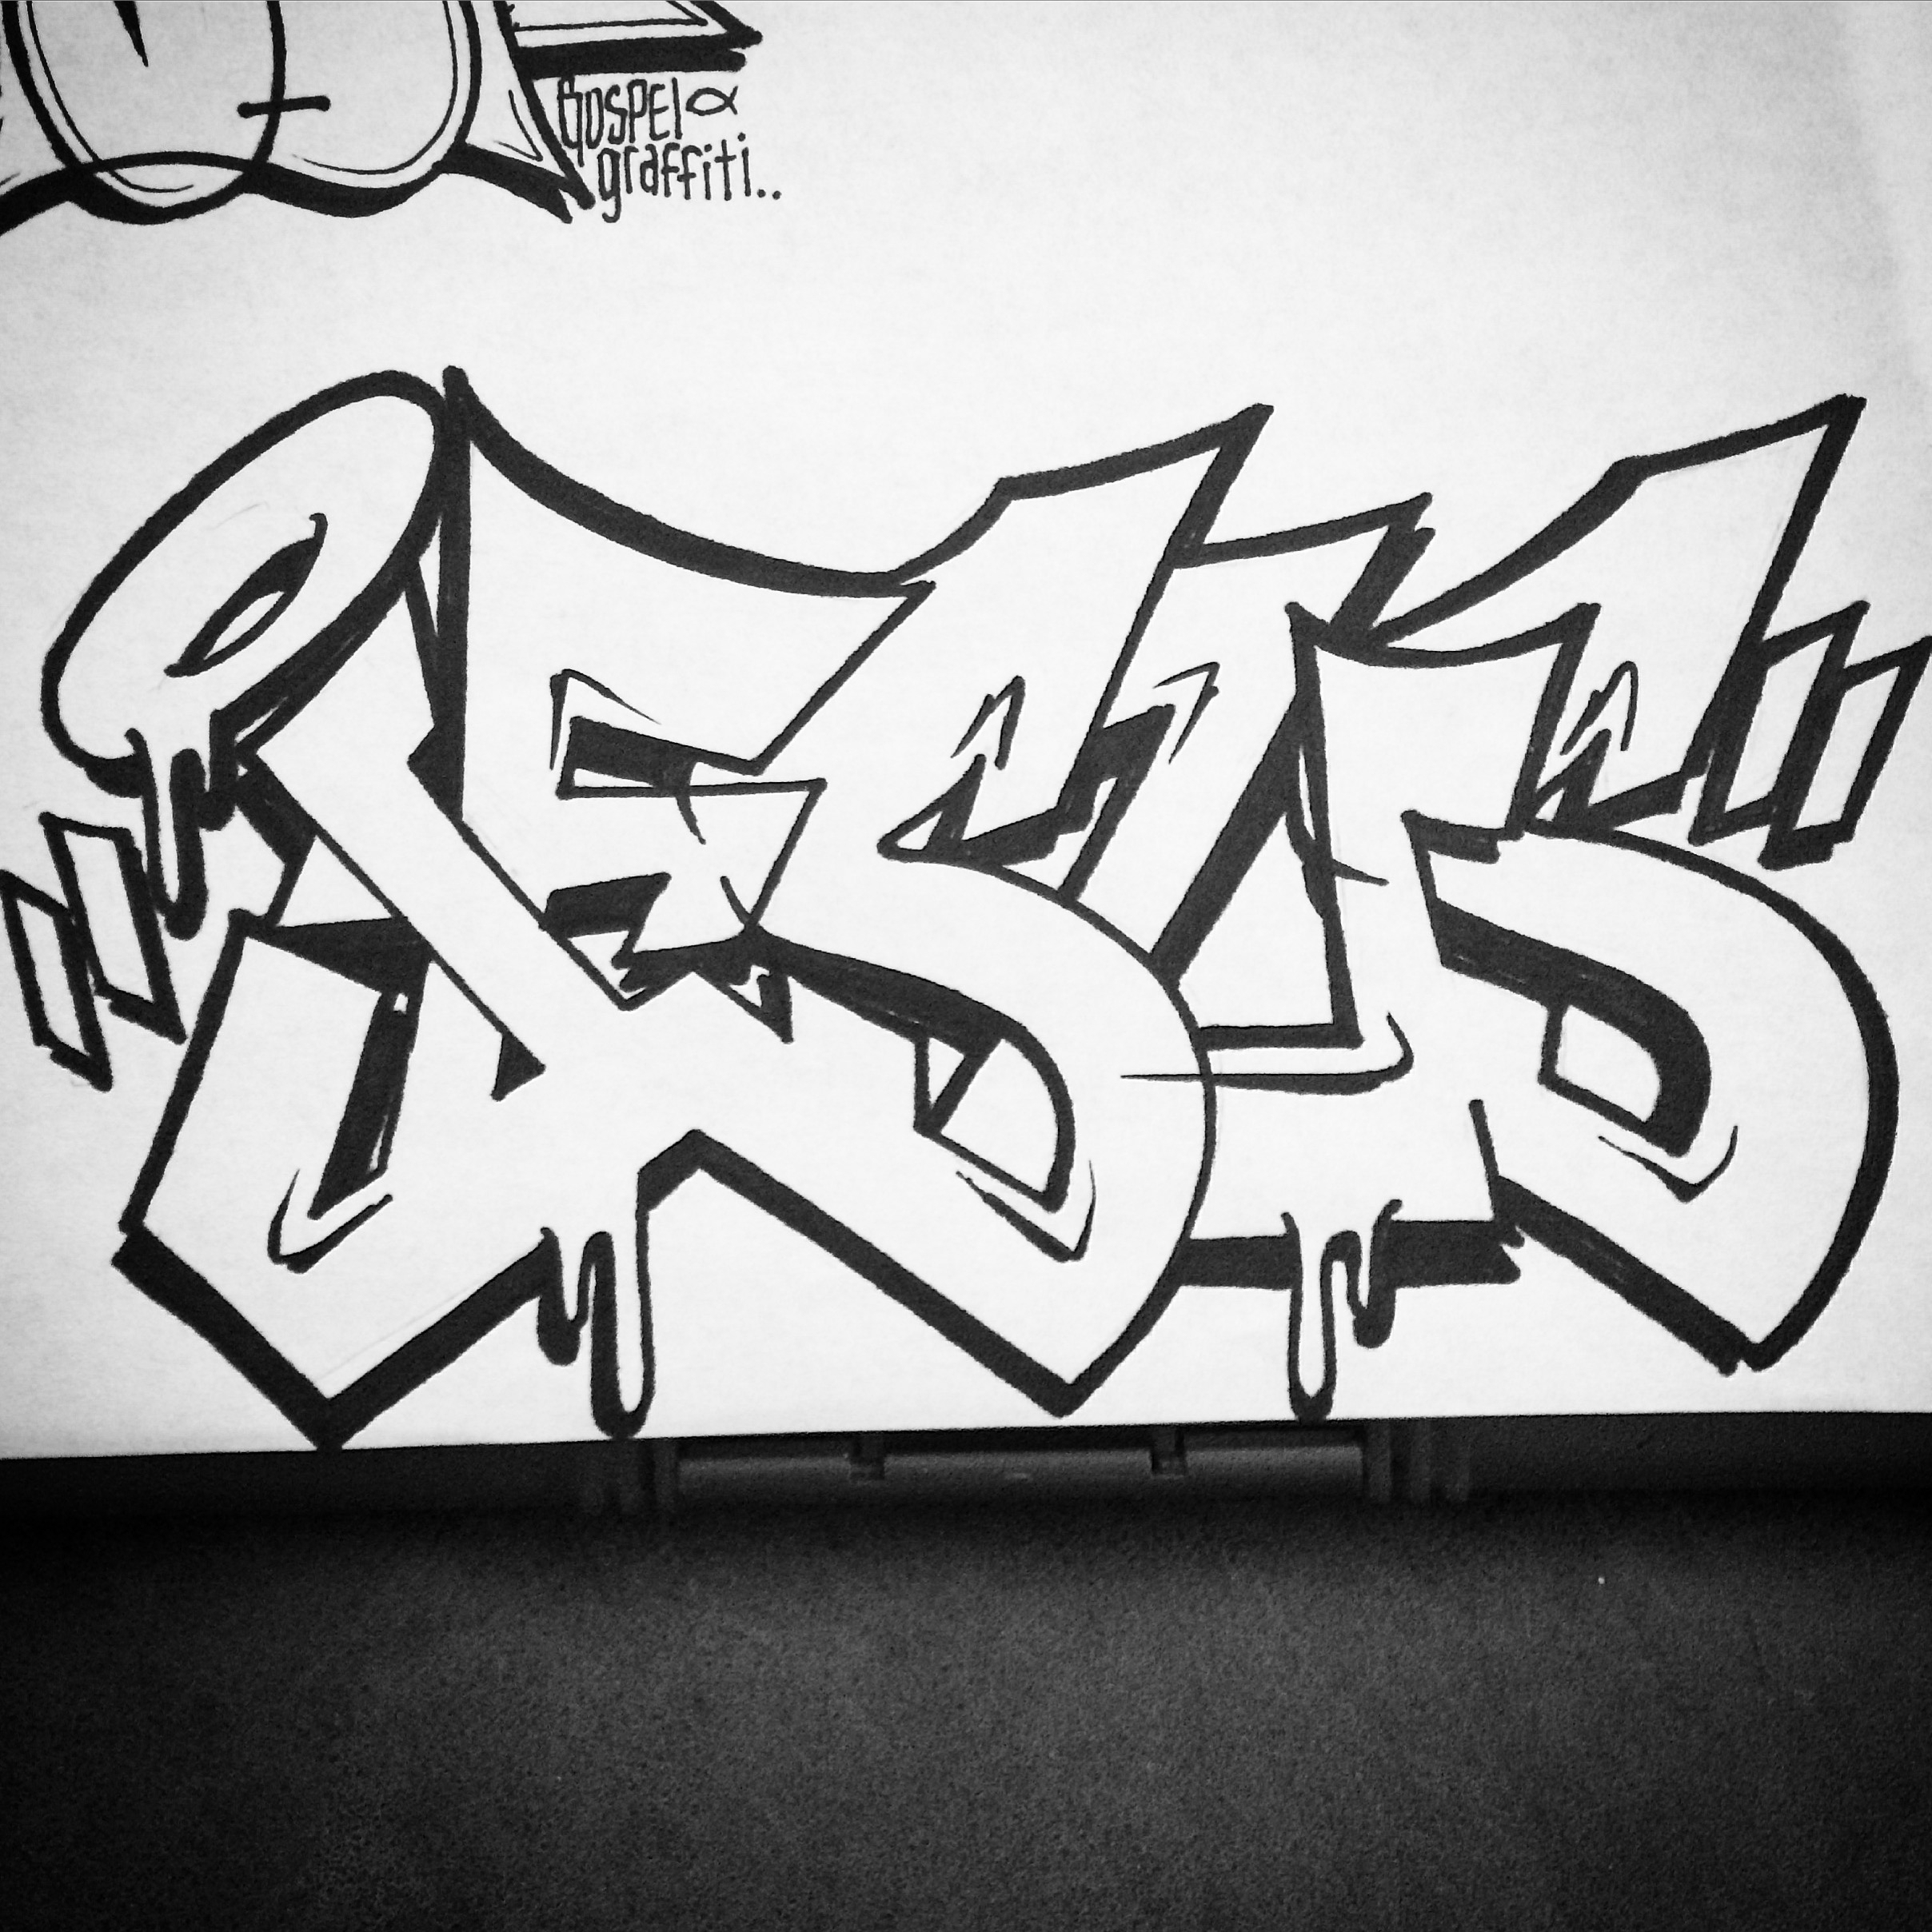 2416x2416 Graffiti Designs To Draw For A Gospel Name Sketch Archives